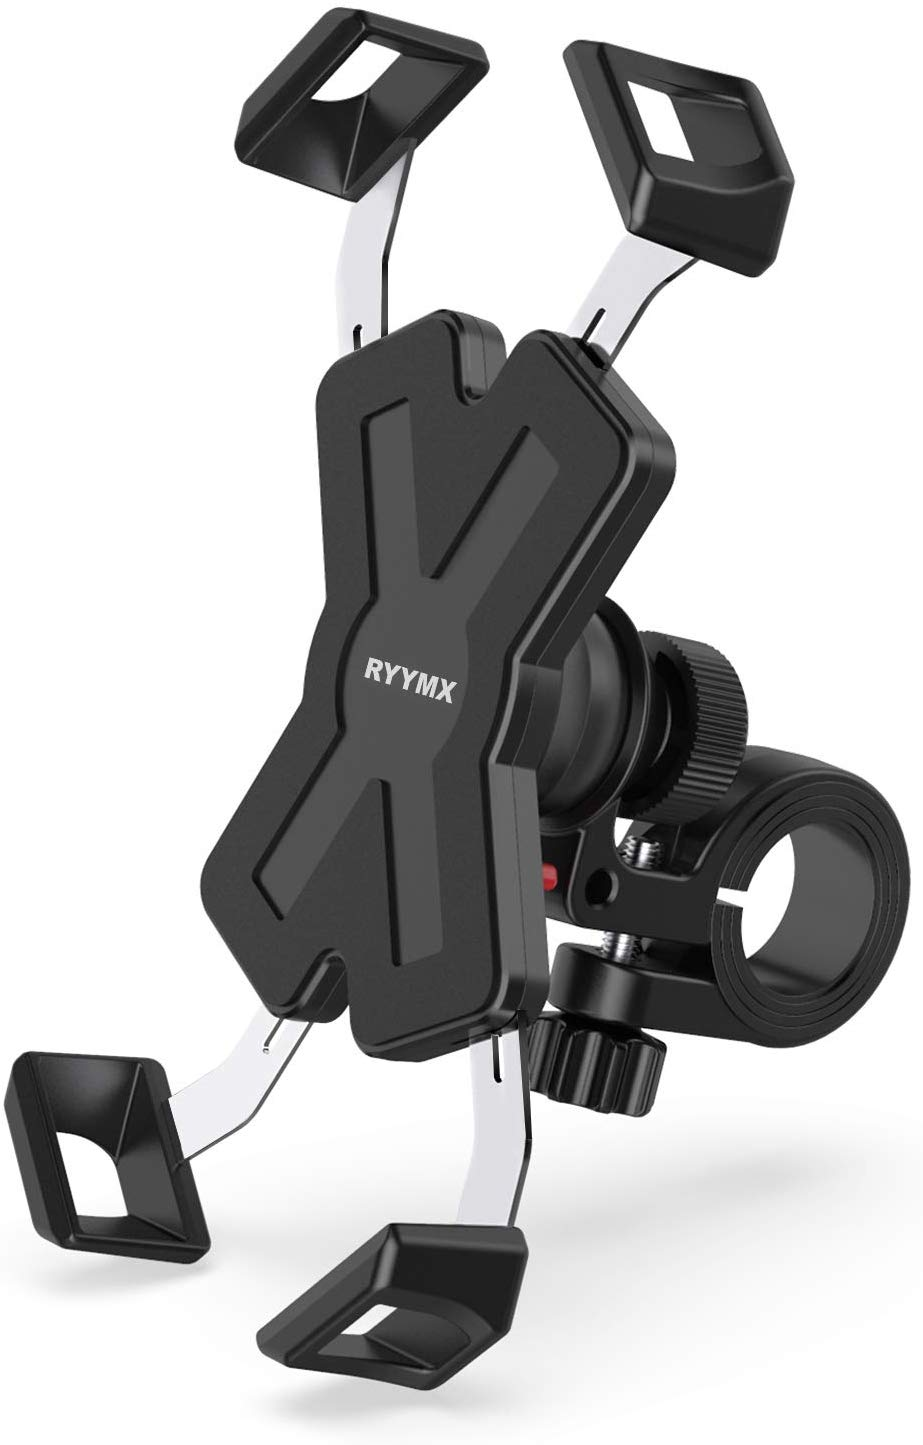 RYYMX Bicycle Phone Holder